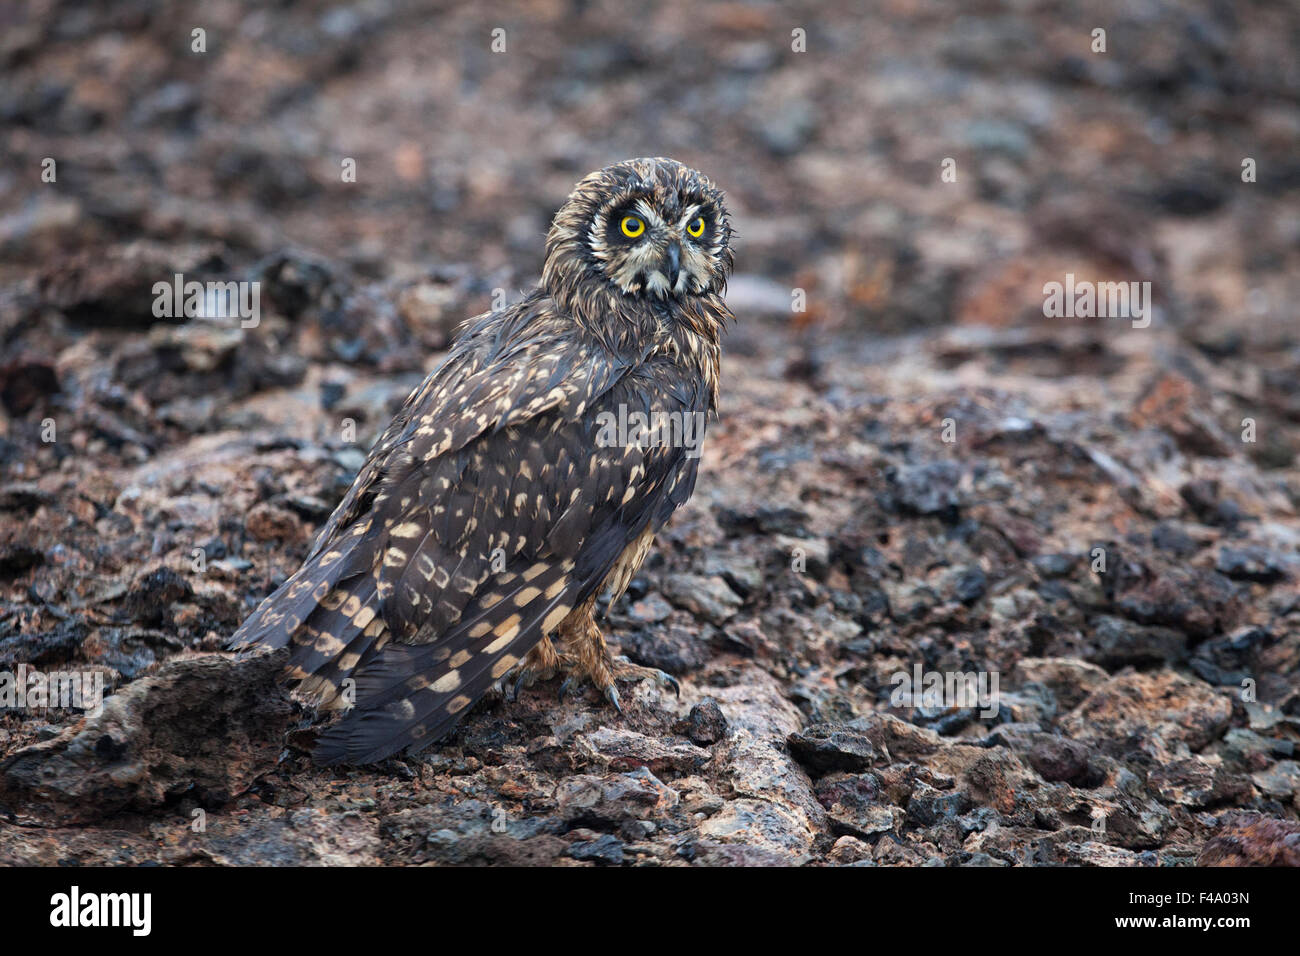 Short-eared owl (Asio flammeus galapagoensis) camouflaged against lava rock - Stock Image